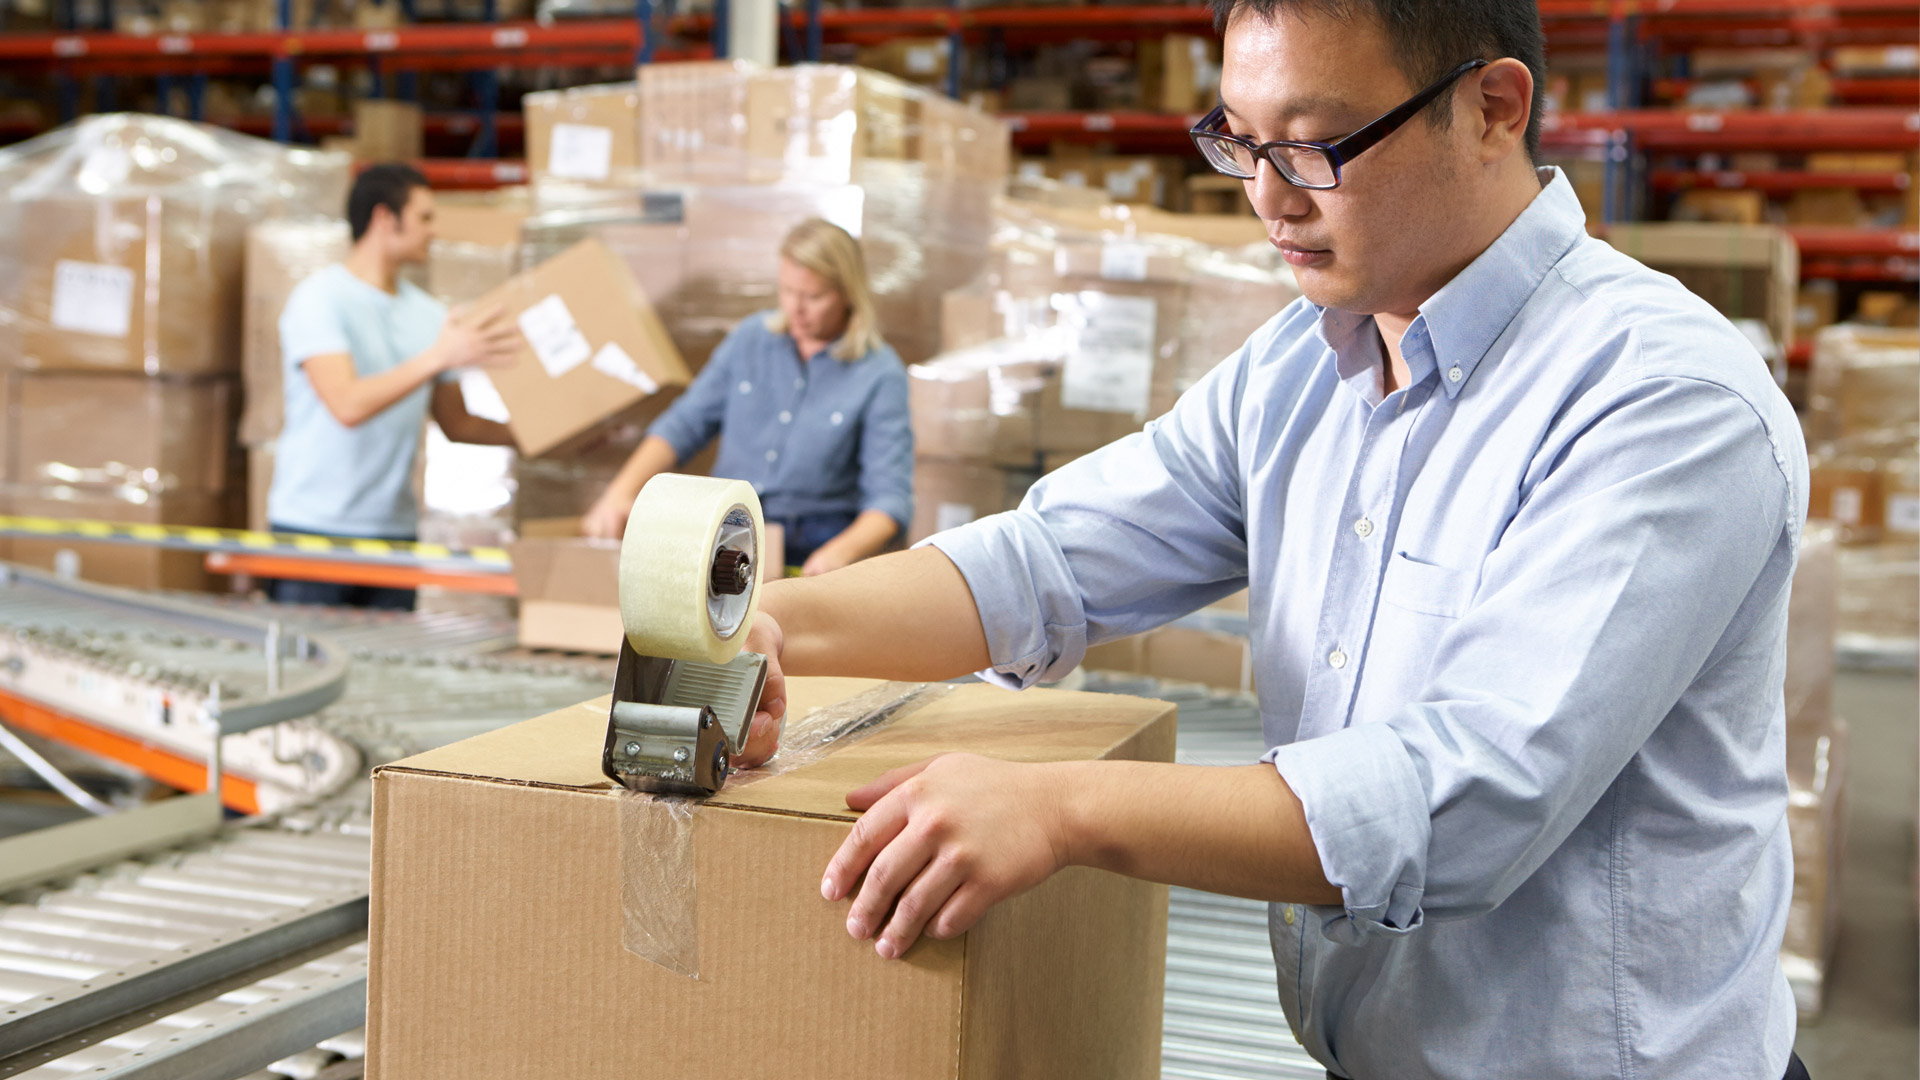 workers-in-distribution-warehouse-PU4MKZ7-small